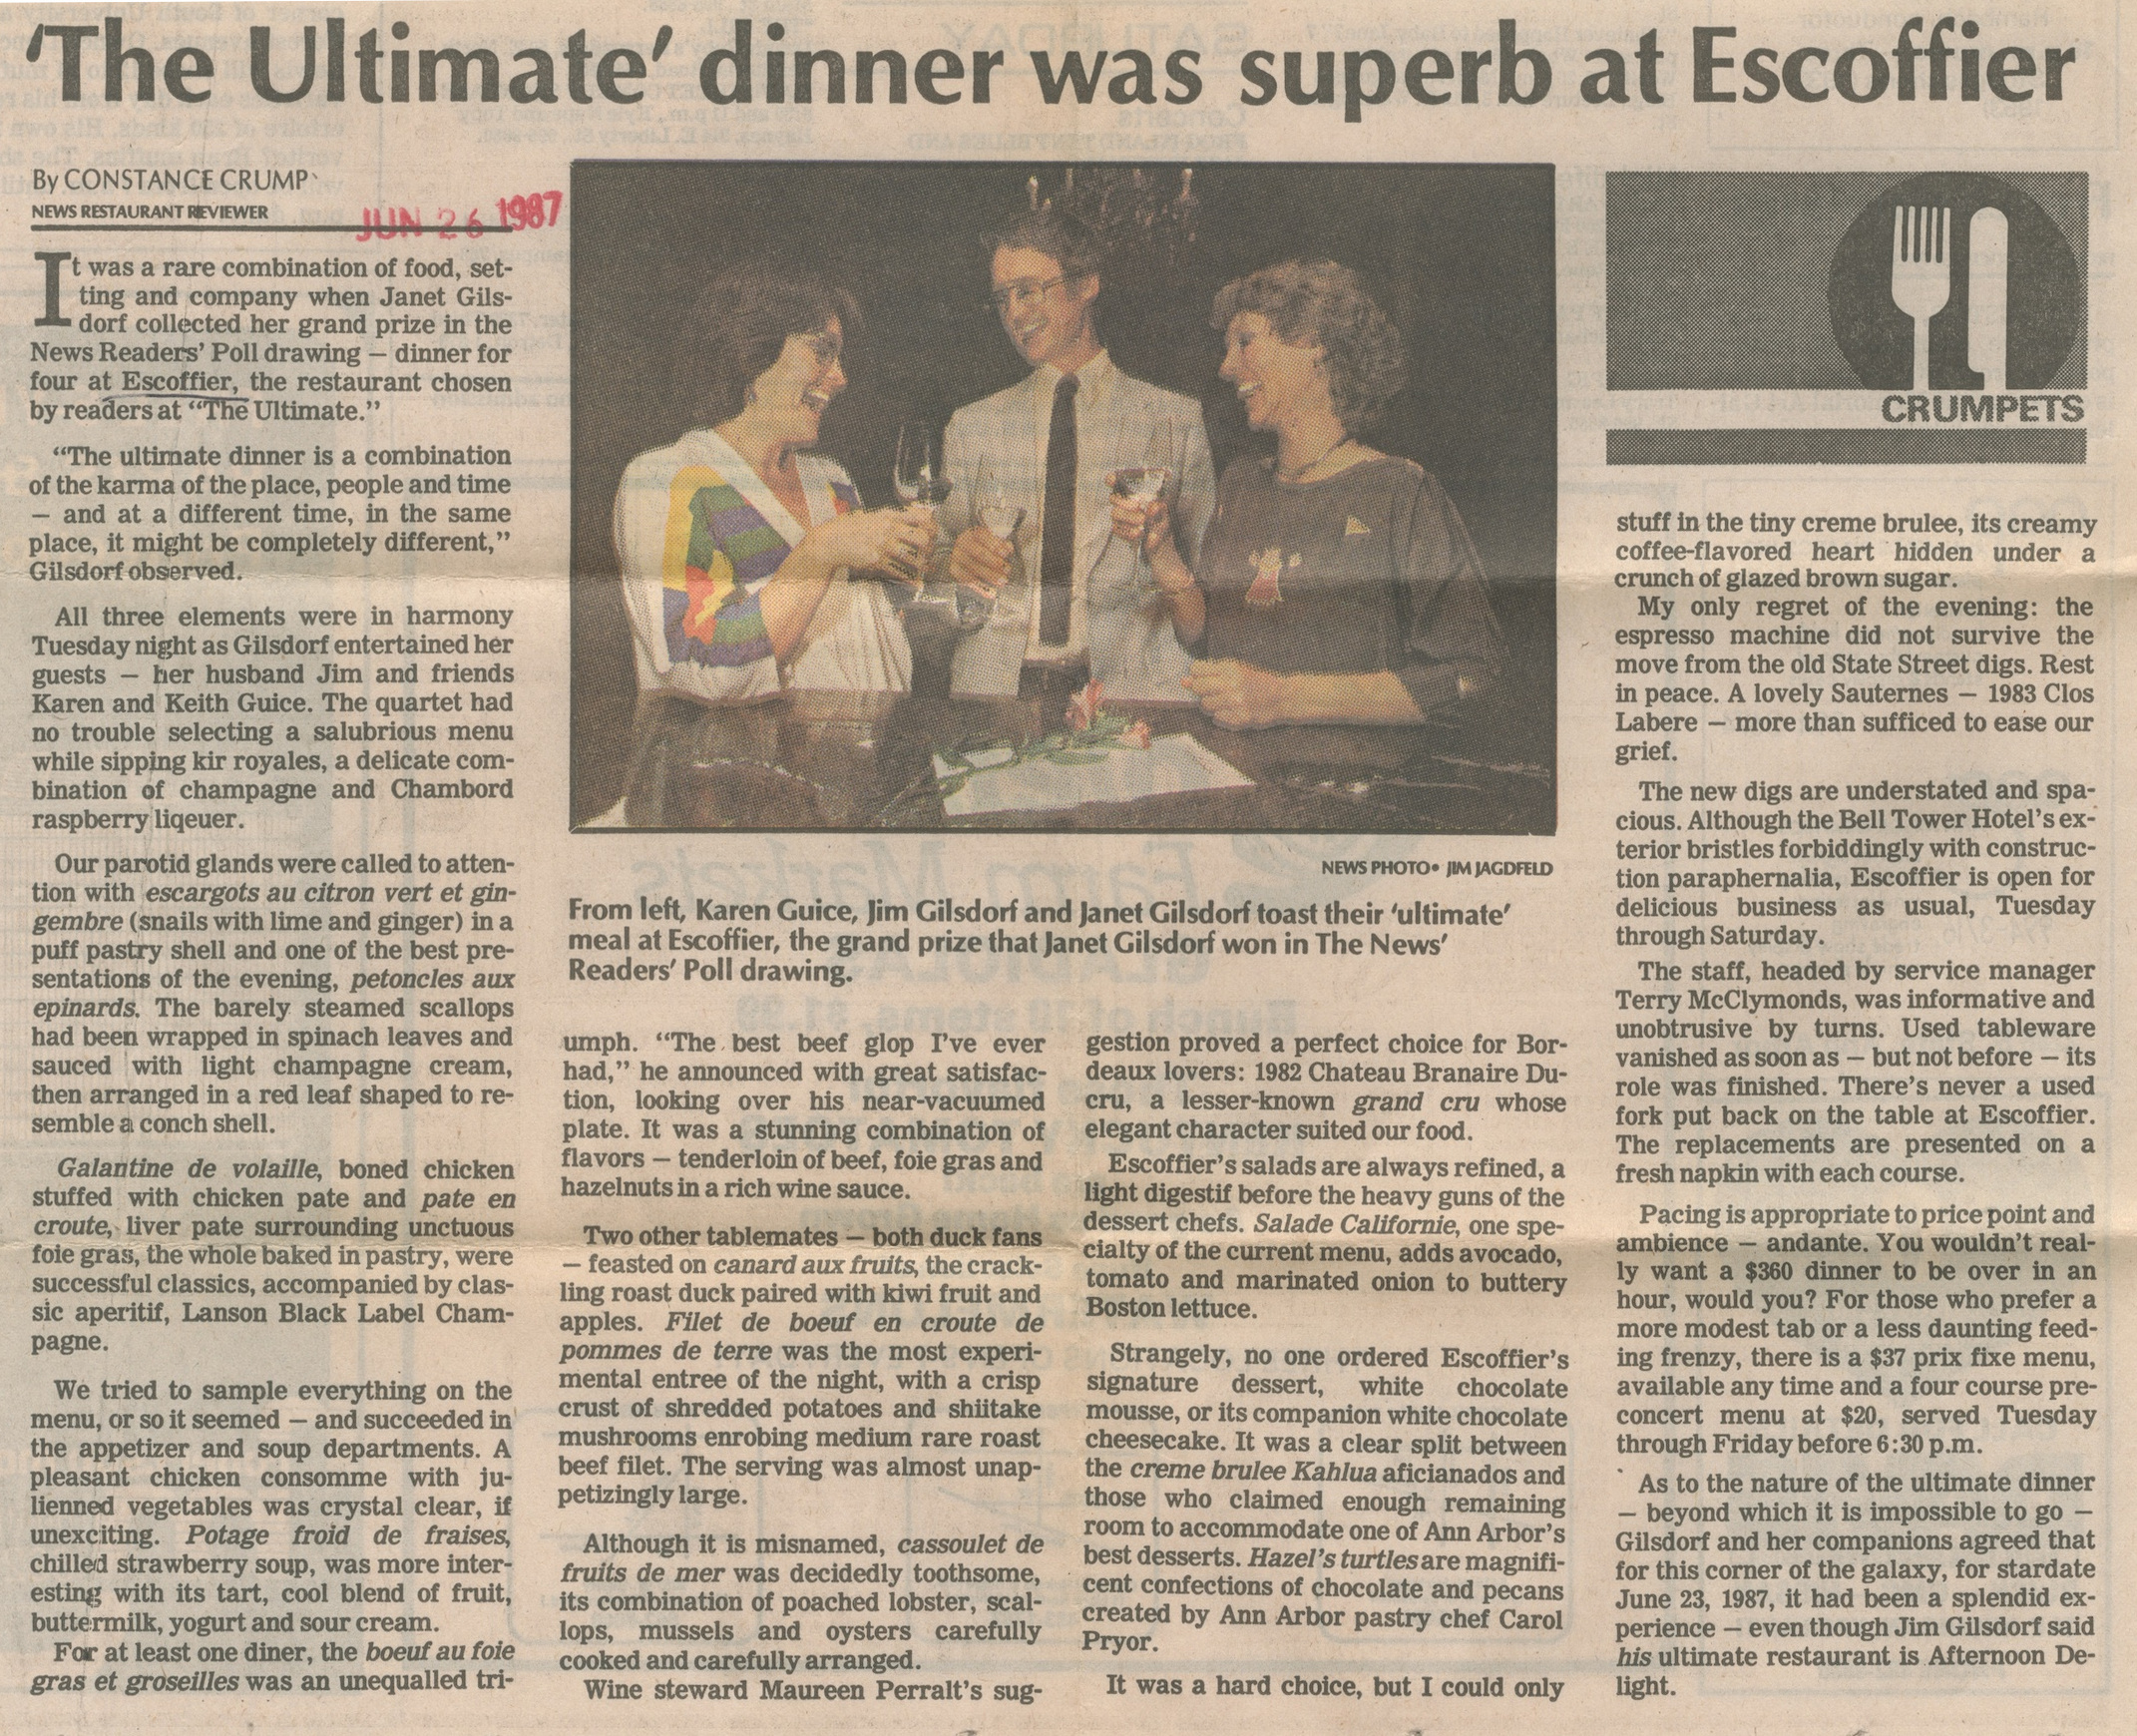 'The Ultimate' Dinner Was Superb At Escoffier image